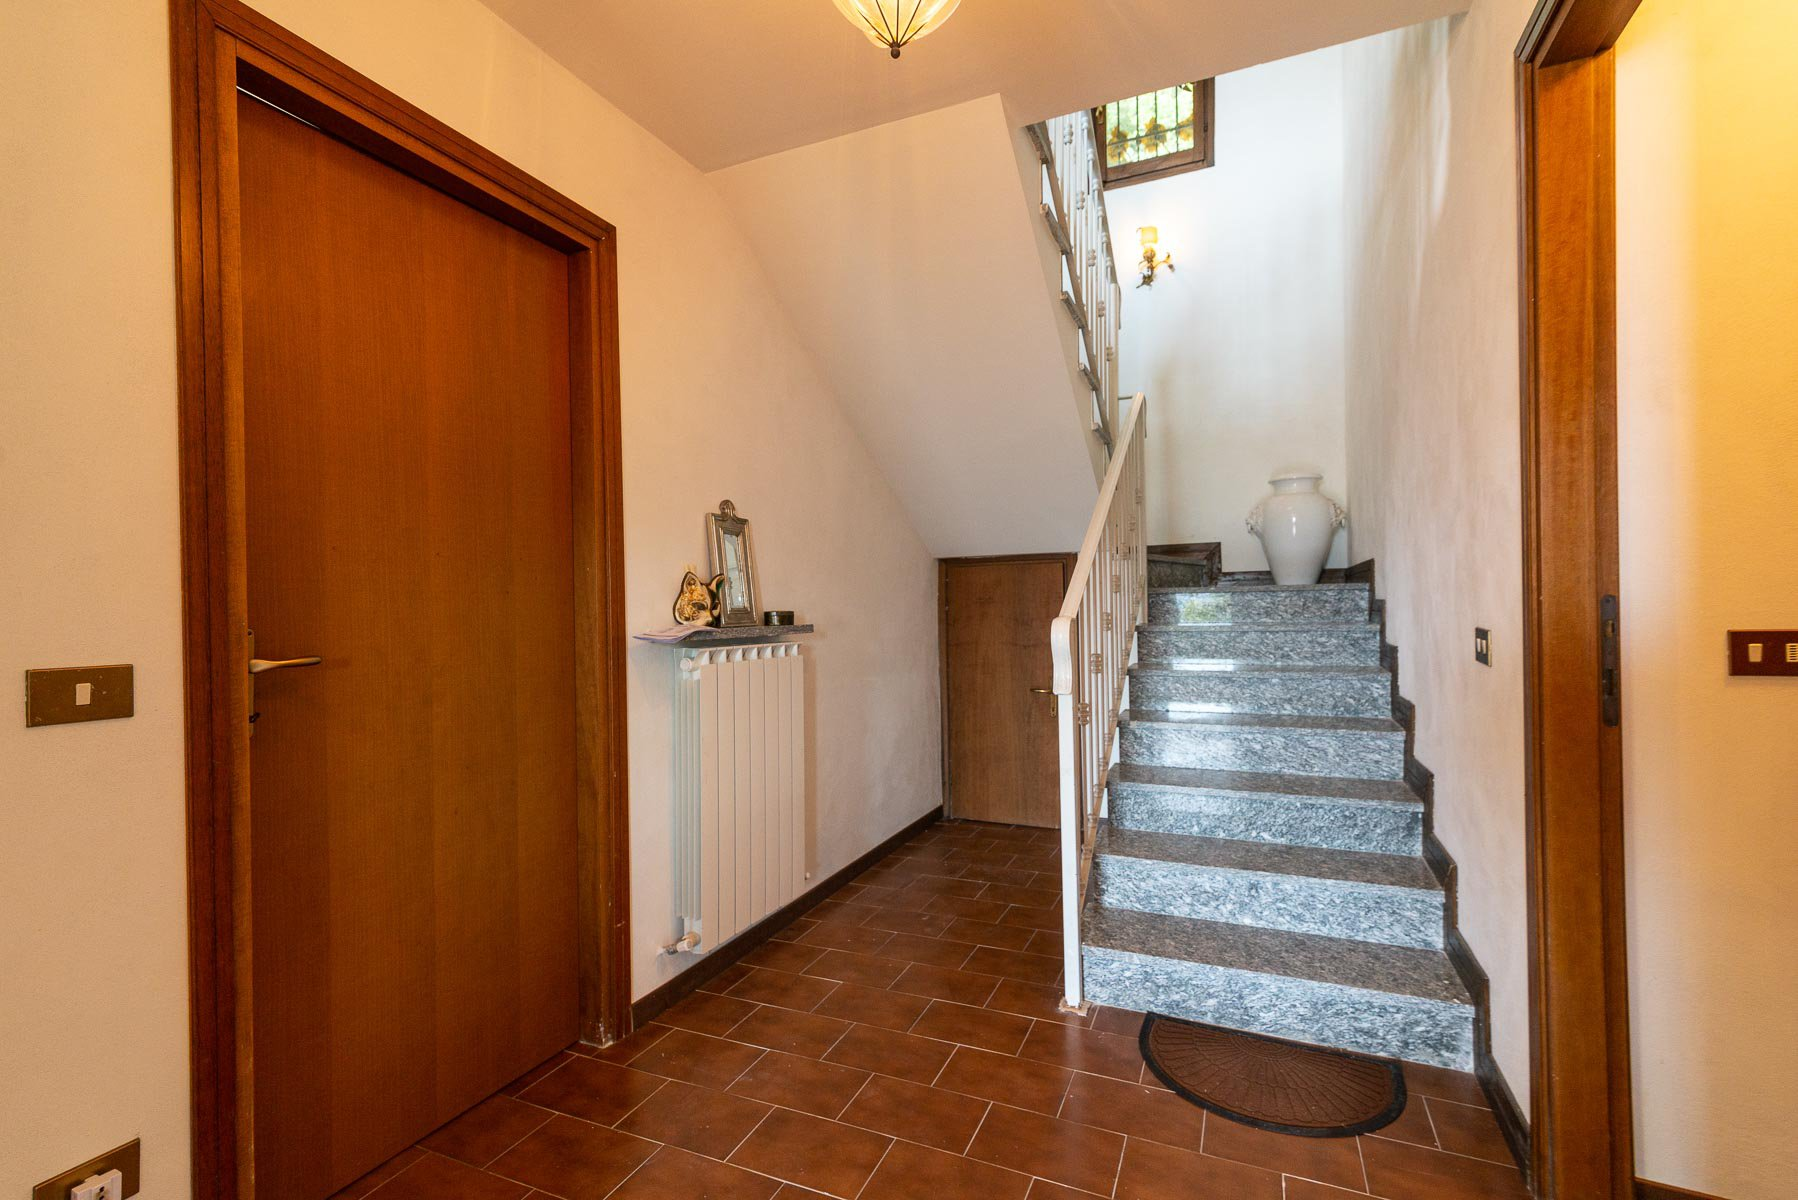 villa for sale on the hill of Stresa with lake view- staircase